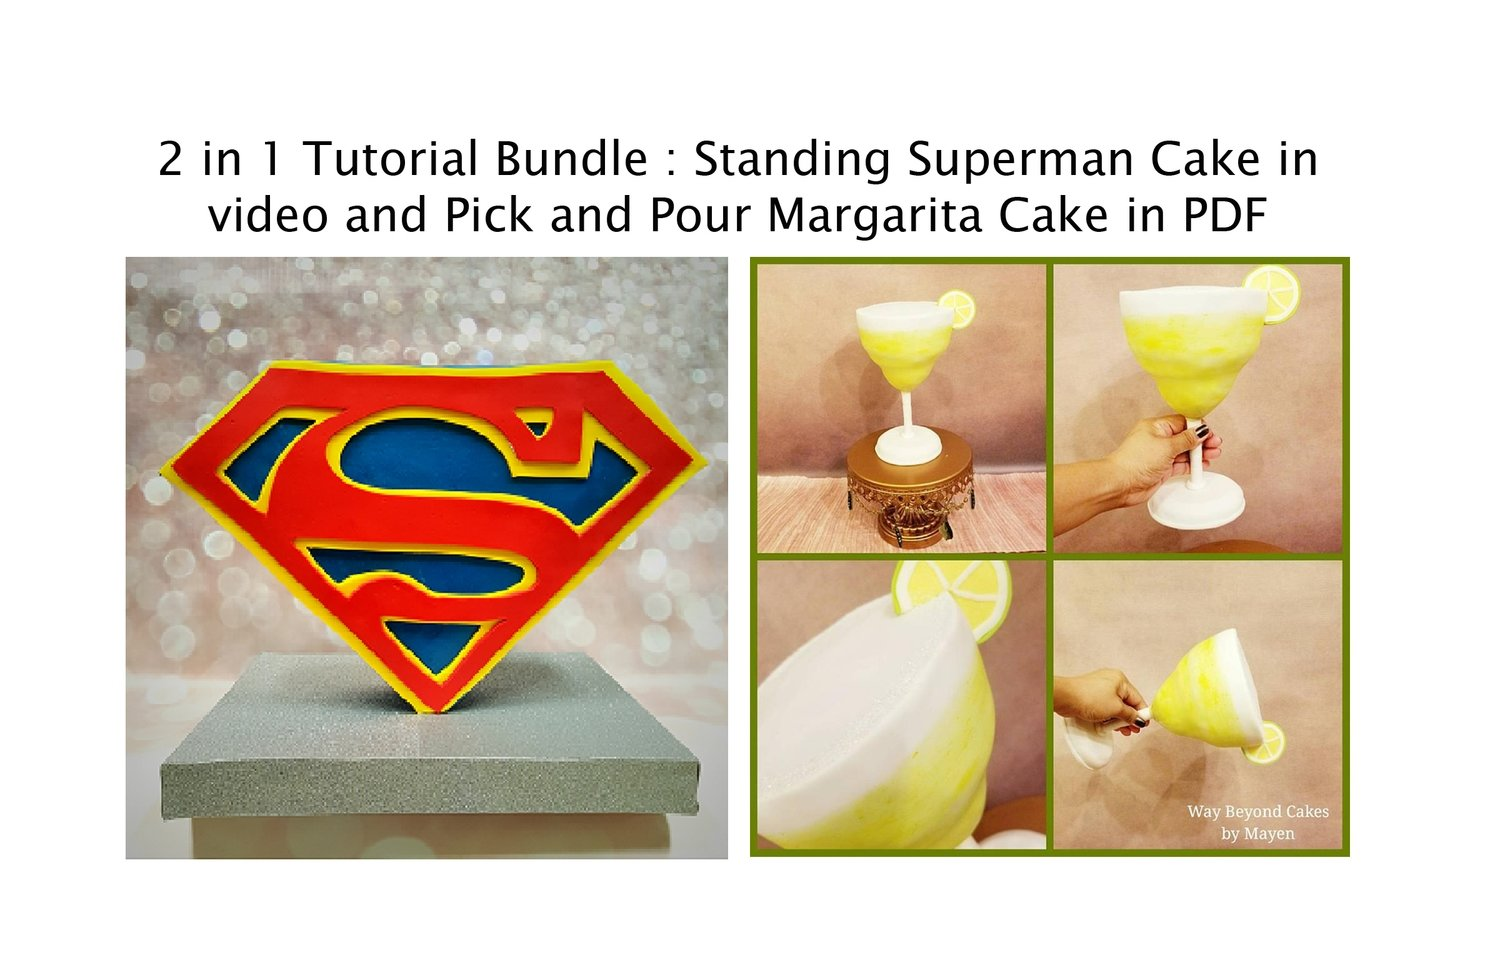 Tutorial Bundle : Standing Super Cake and Pick and Pour Margarita Cake $17